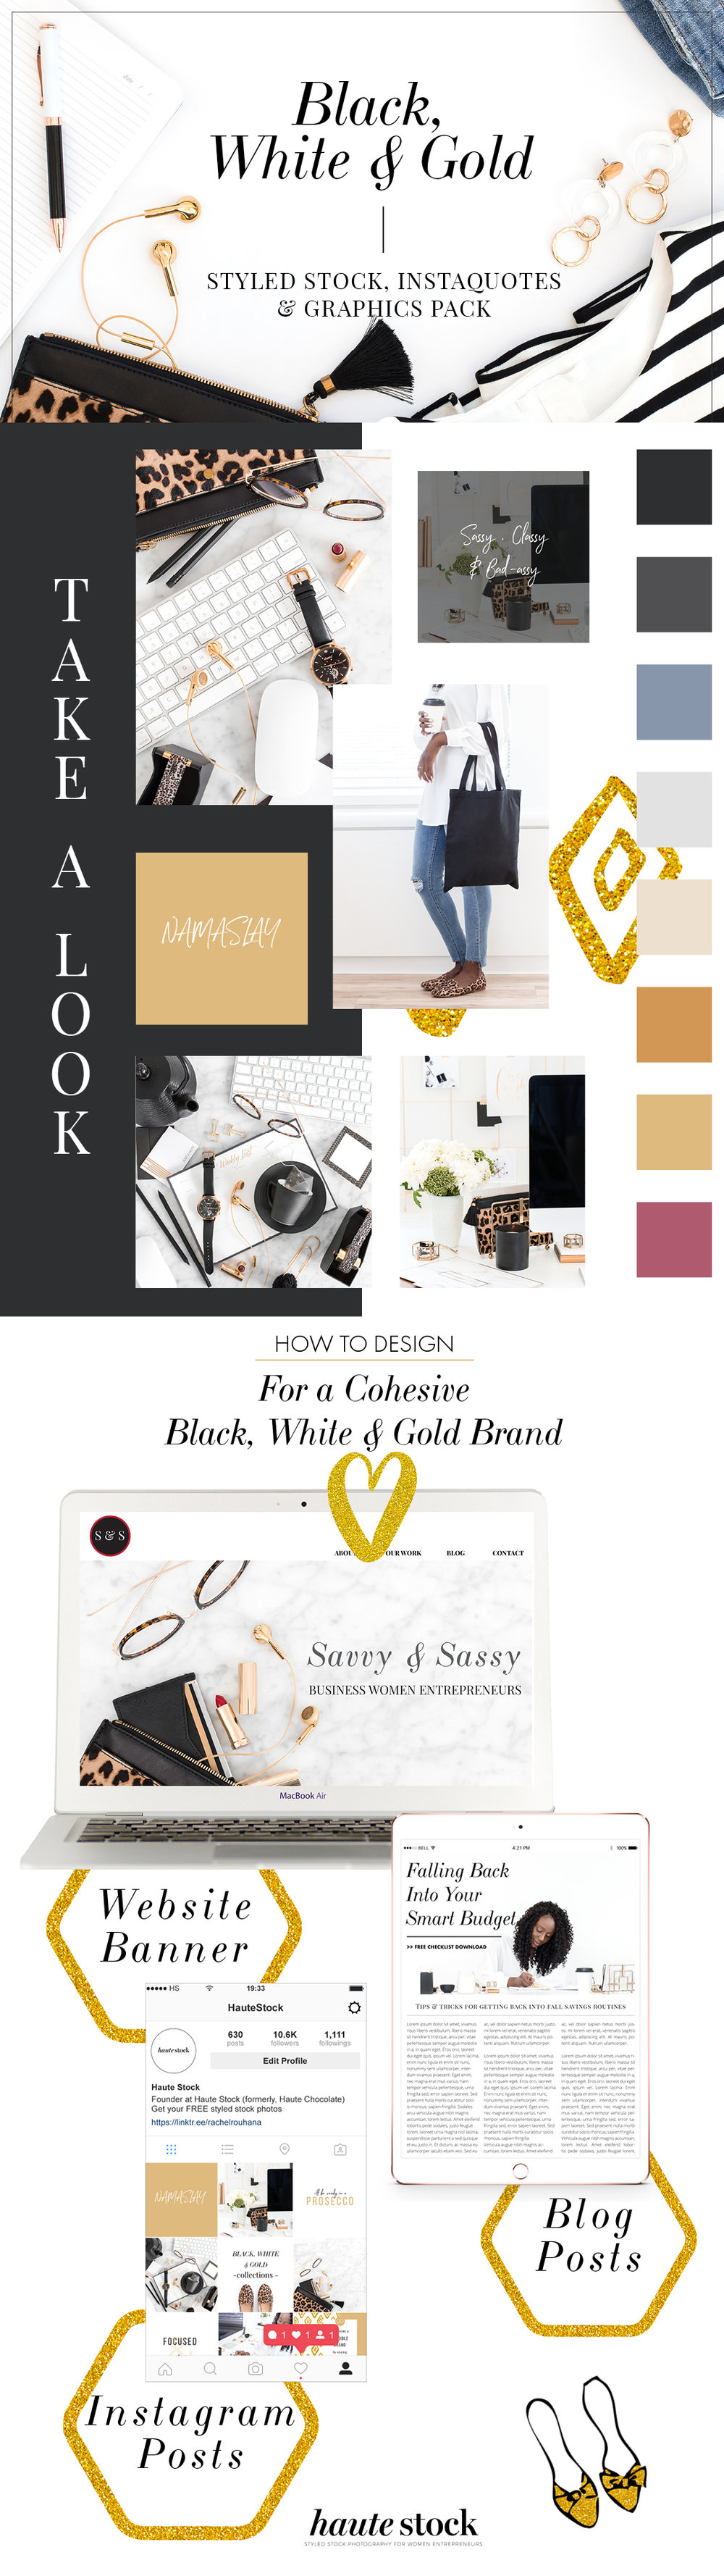 Haute Stock has the sophisticated and chic black, white and gold stock photos you need for your brand! These collections go together beautifully to create a cohesive brand look. If you want to elevate your brand - click to get a preview of the collections!